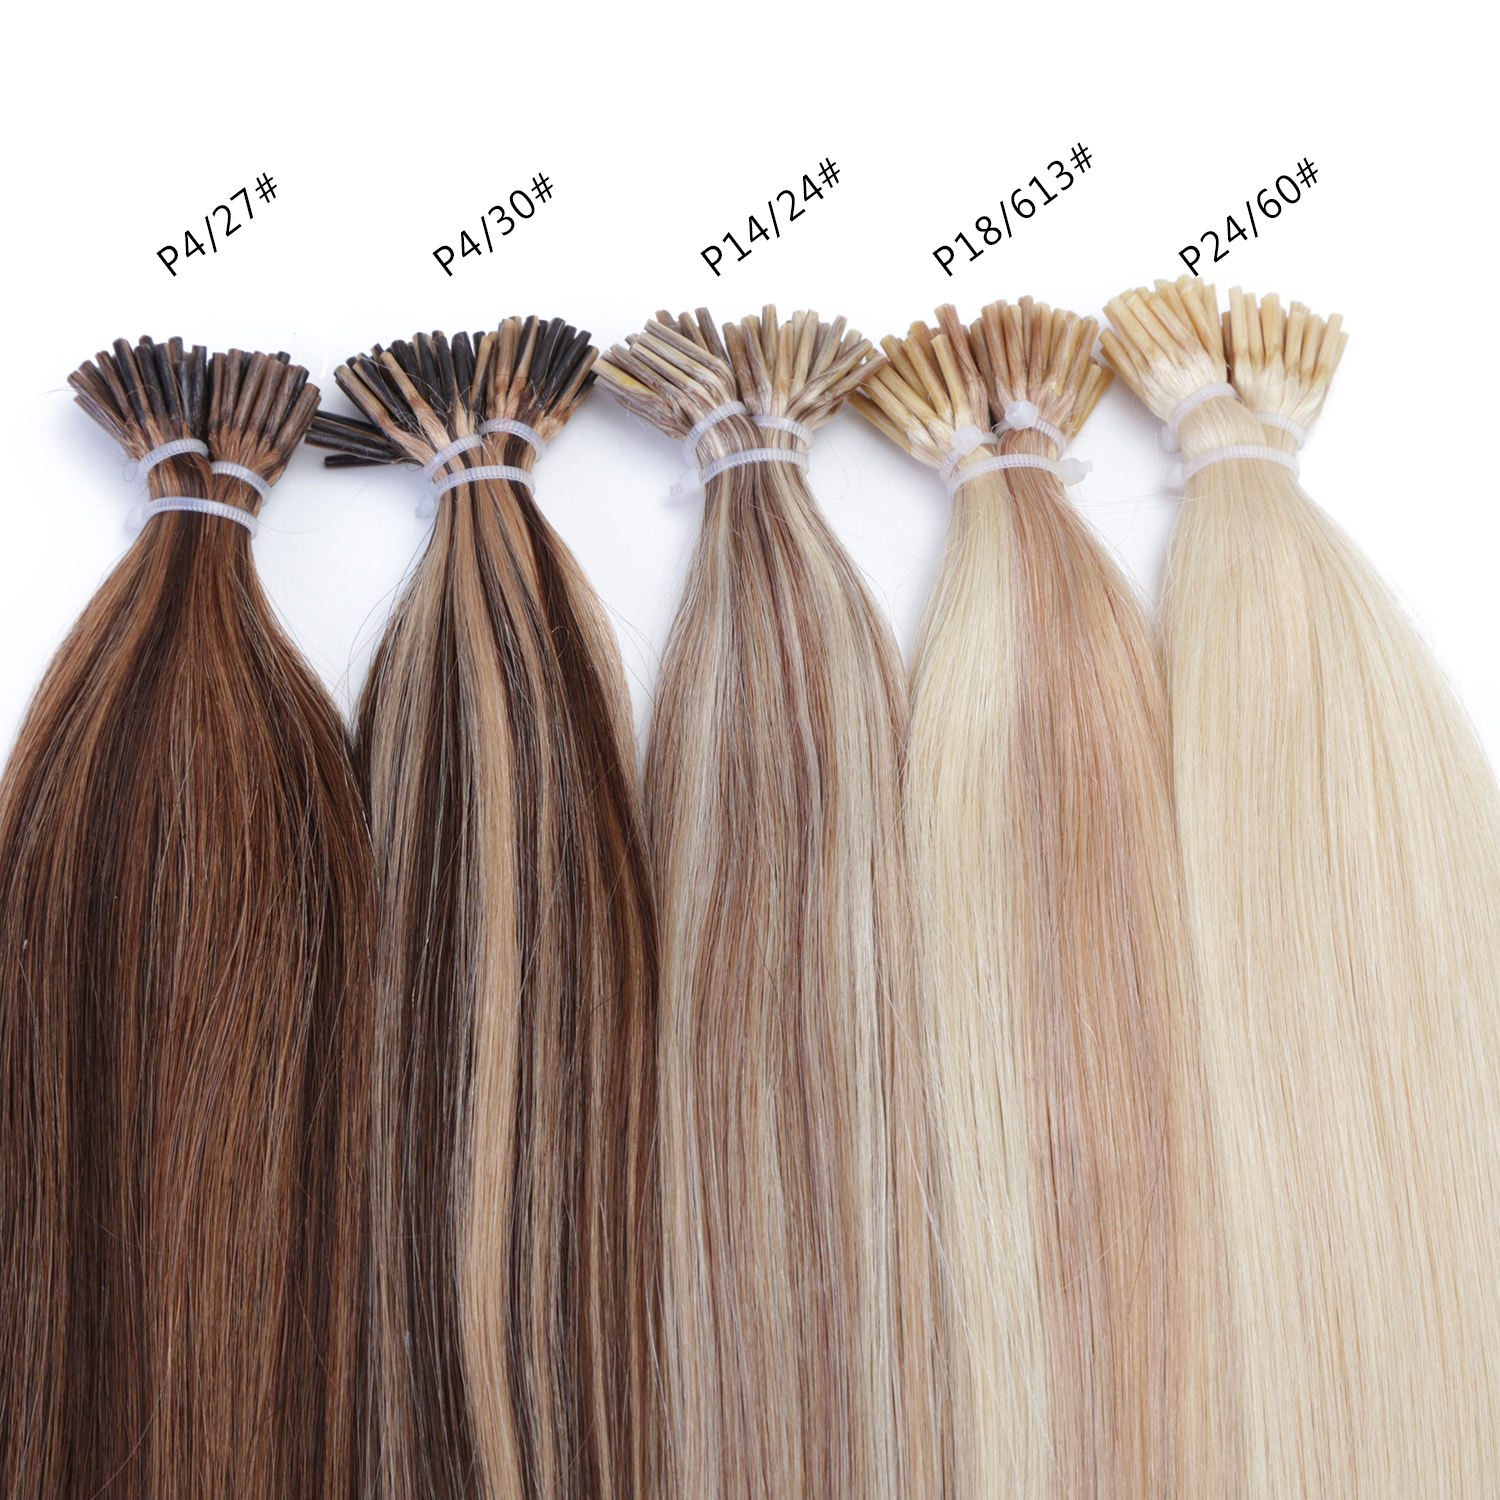 Free Sample Mix Light Color I Tip Human Hair Straight Double Drawn Pre bonded Hair Extensions I Tip